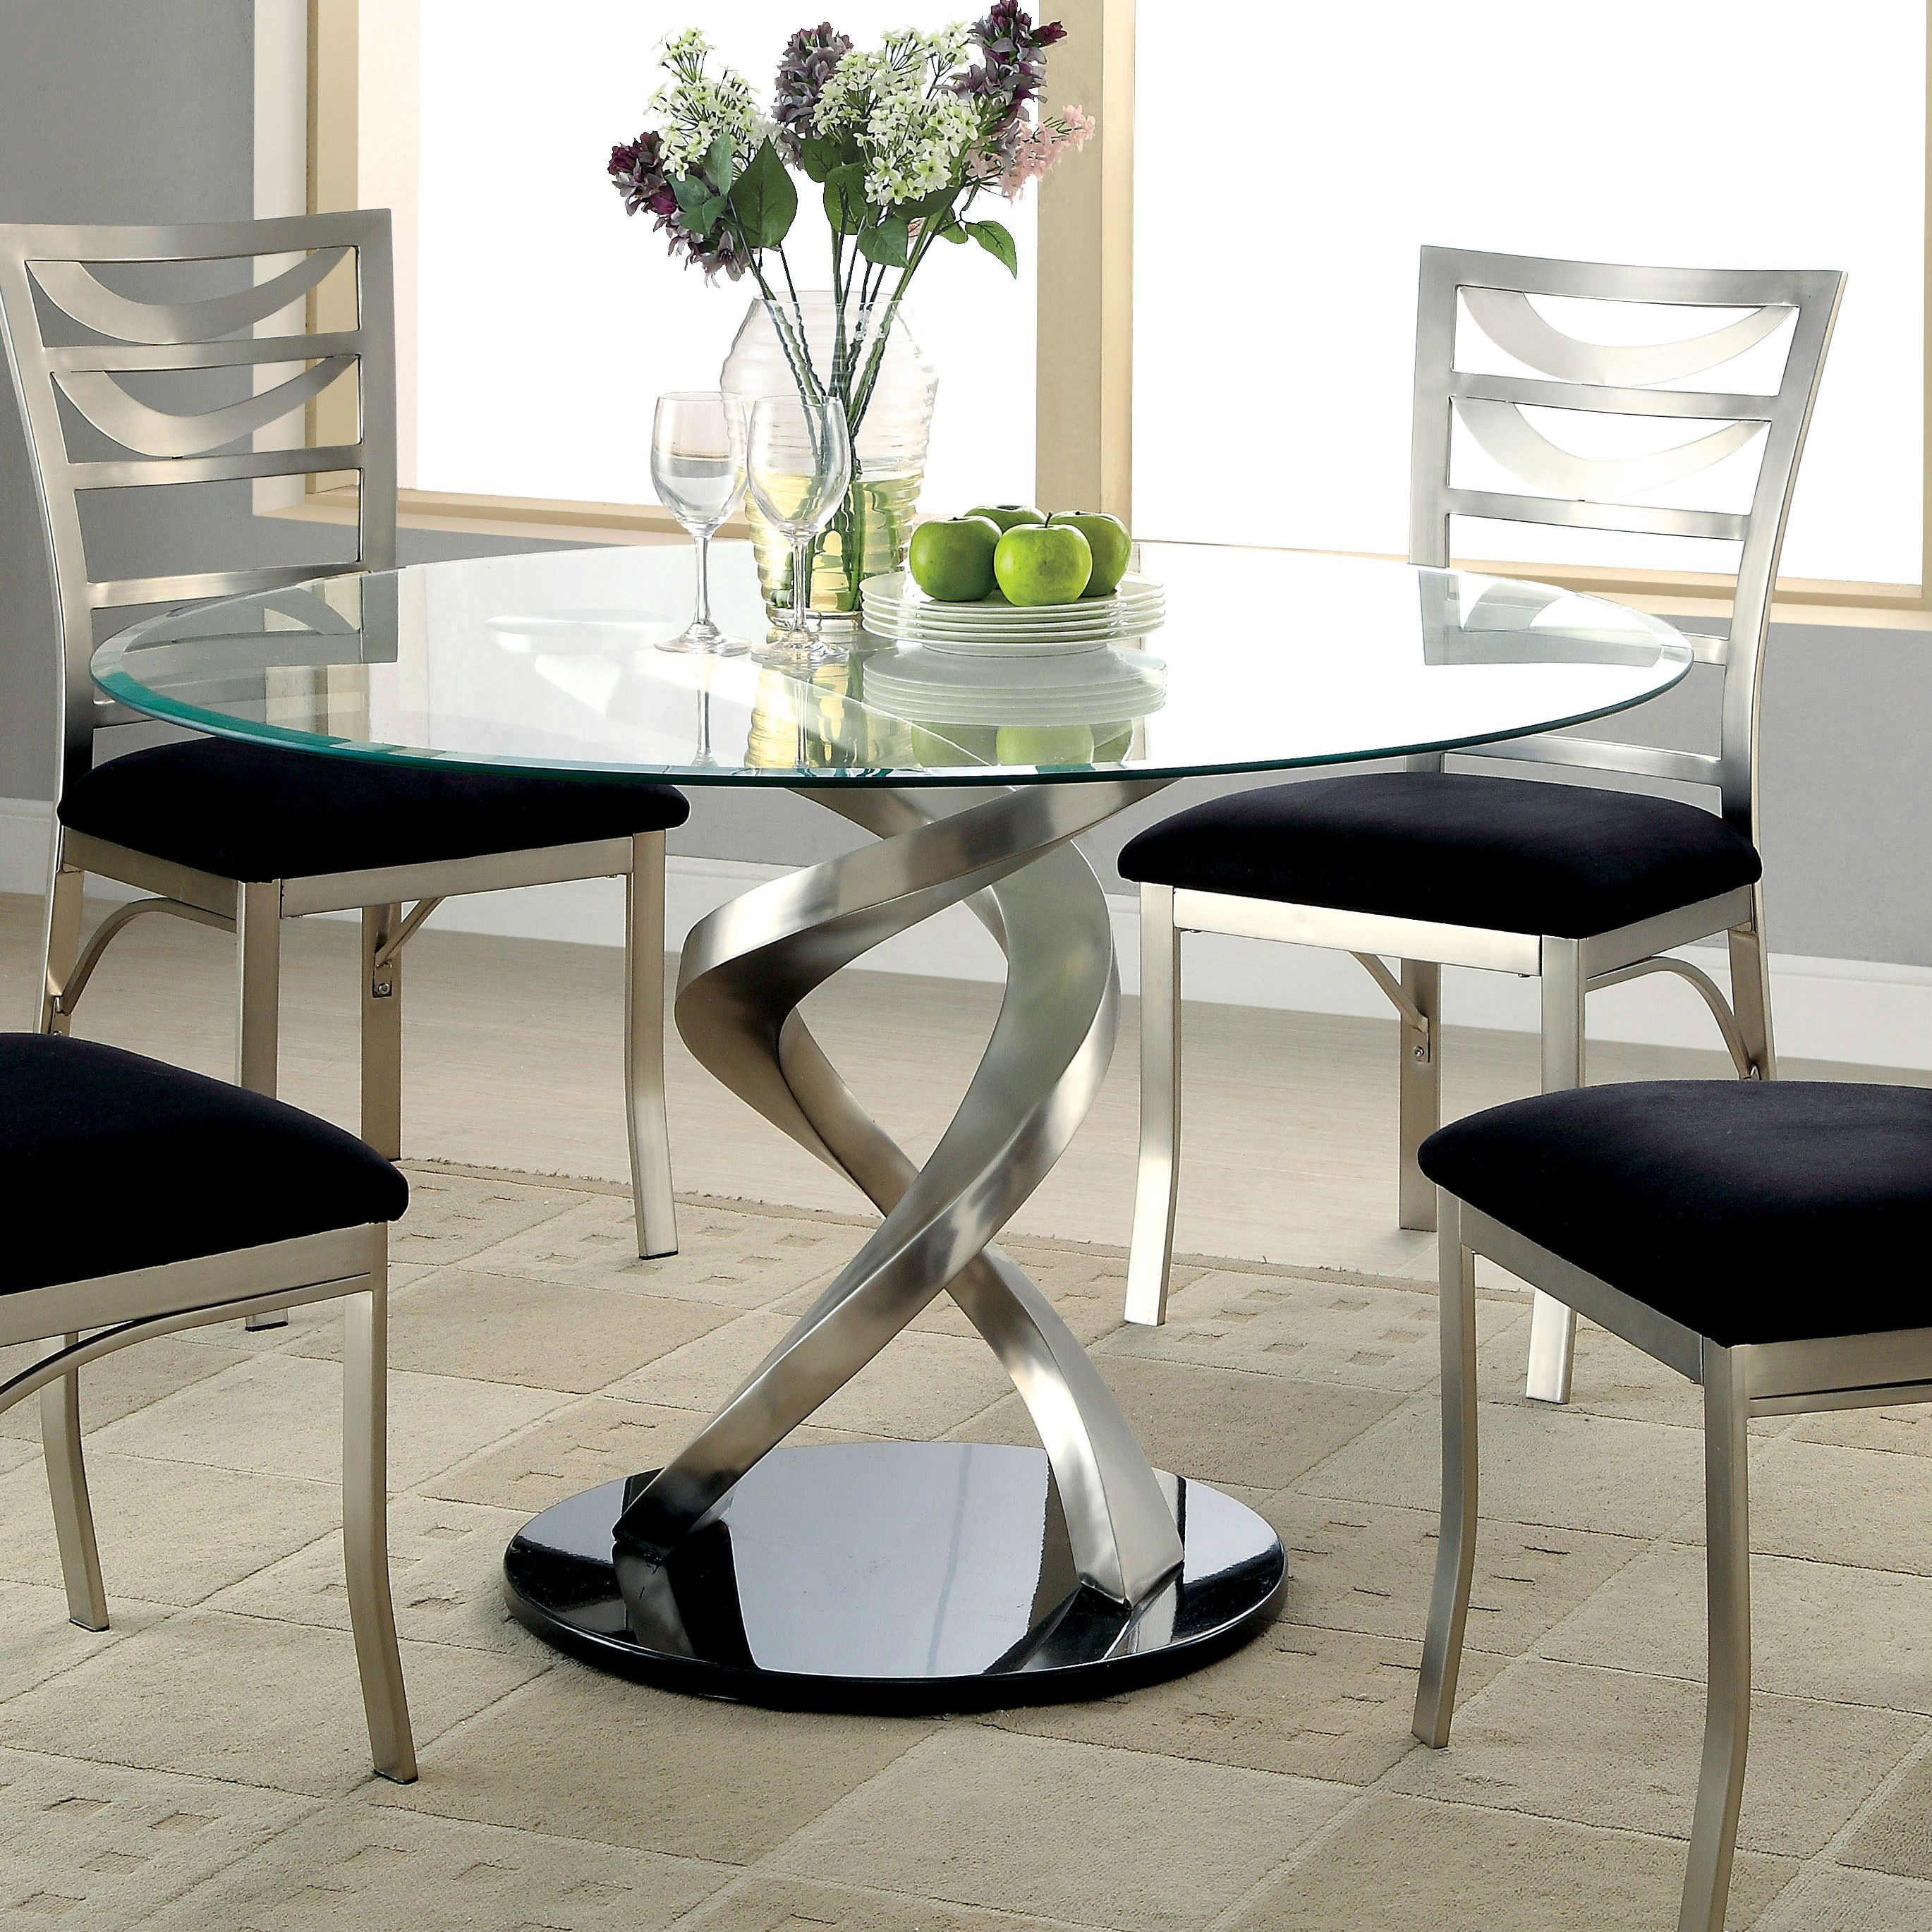 Furniture of America Sculpture I Contemporary Glass Top Round Dining Table  (Satin), Silver